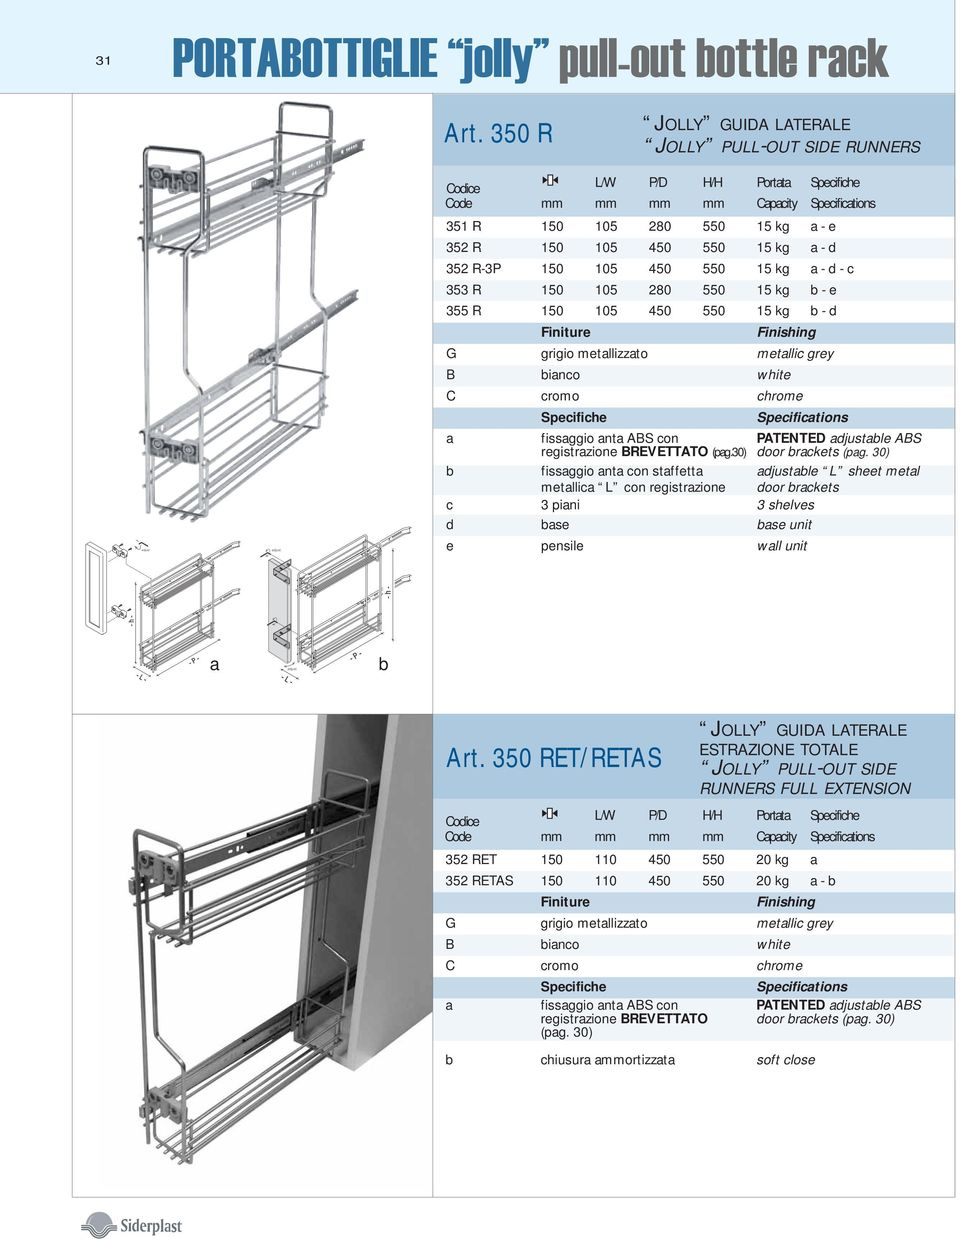 355 R 150 105 450 550 15 kg b - d a fissaggio anta ABS con PATENTED adjustable ABS registrazione BREVETTATO (pag.30) door brackets (pag.